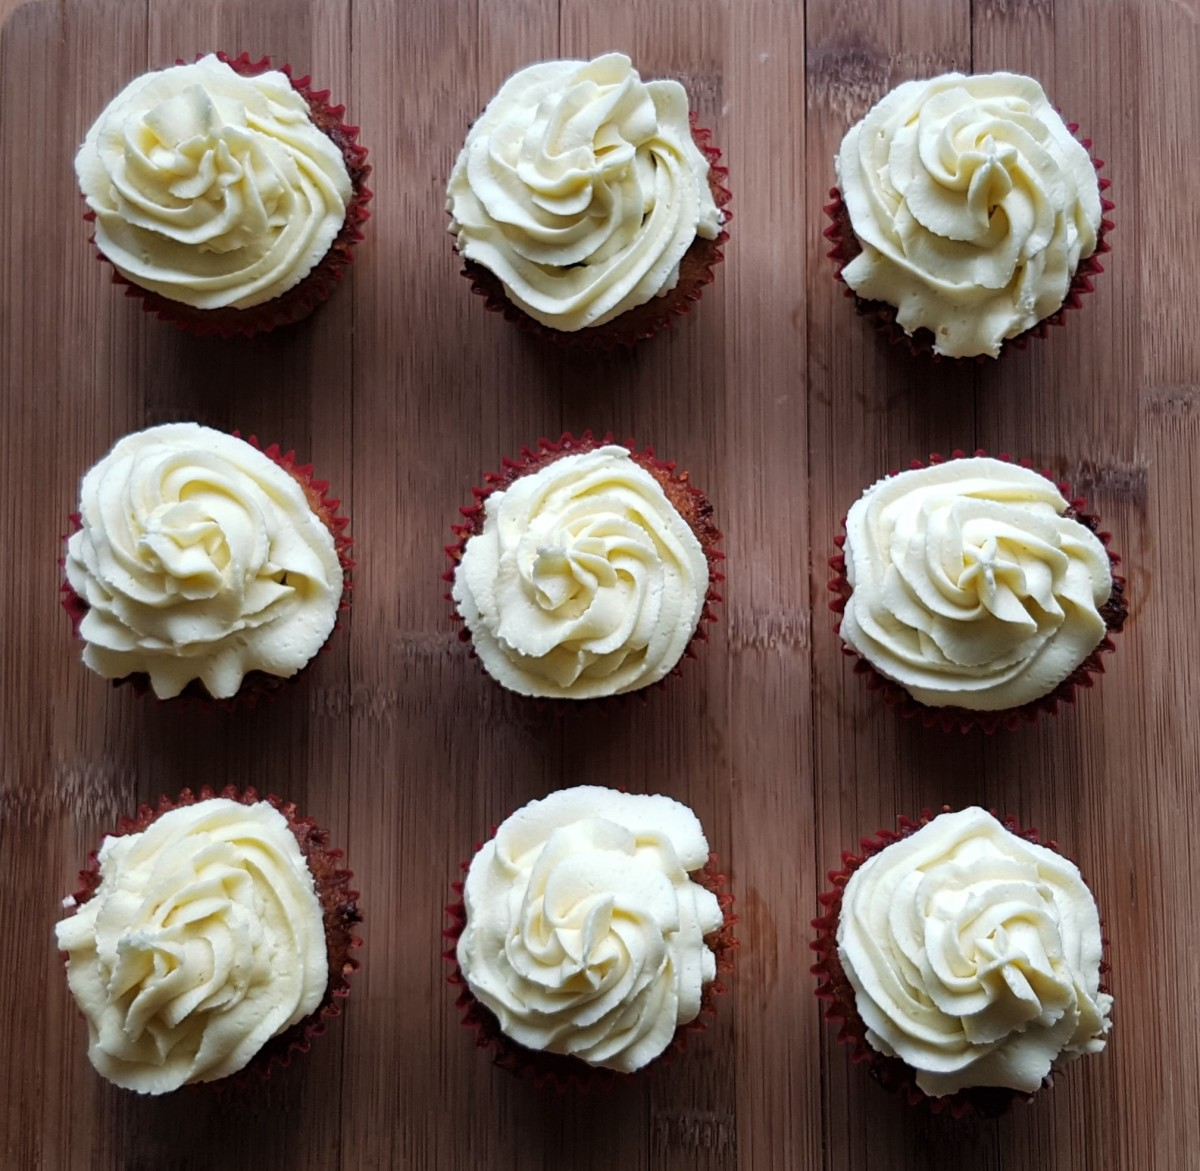 Easy Carrot Cake Cupcakes With White Chocolate Buttercream Frosting